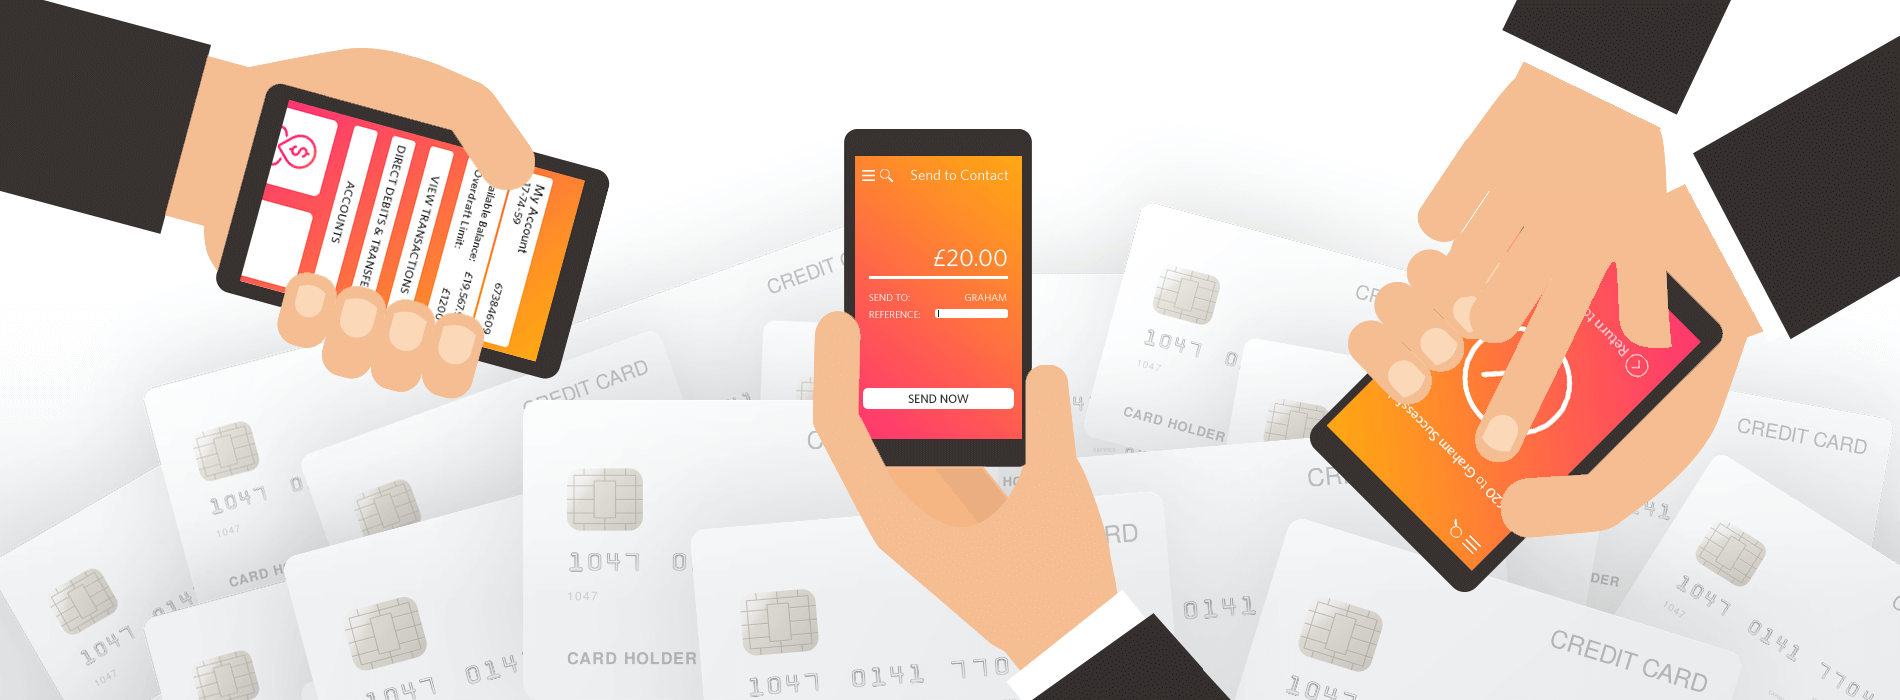 How User Experience Can Drive Customer Loyalty for Banks